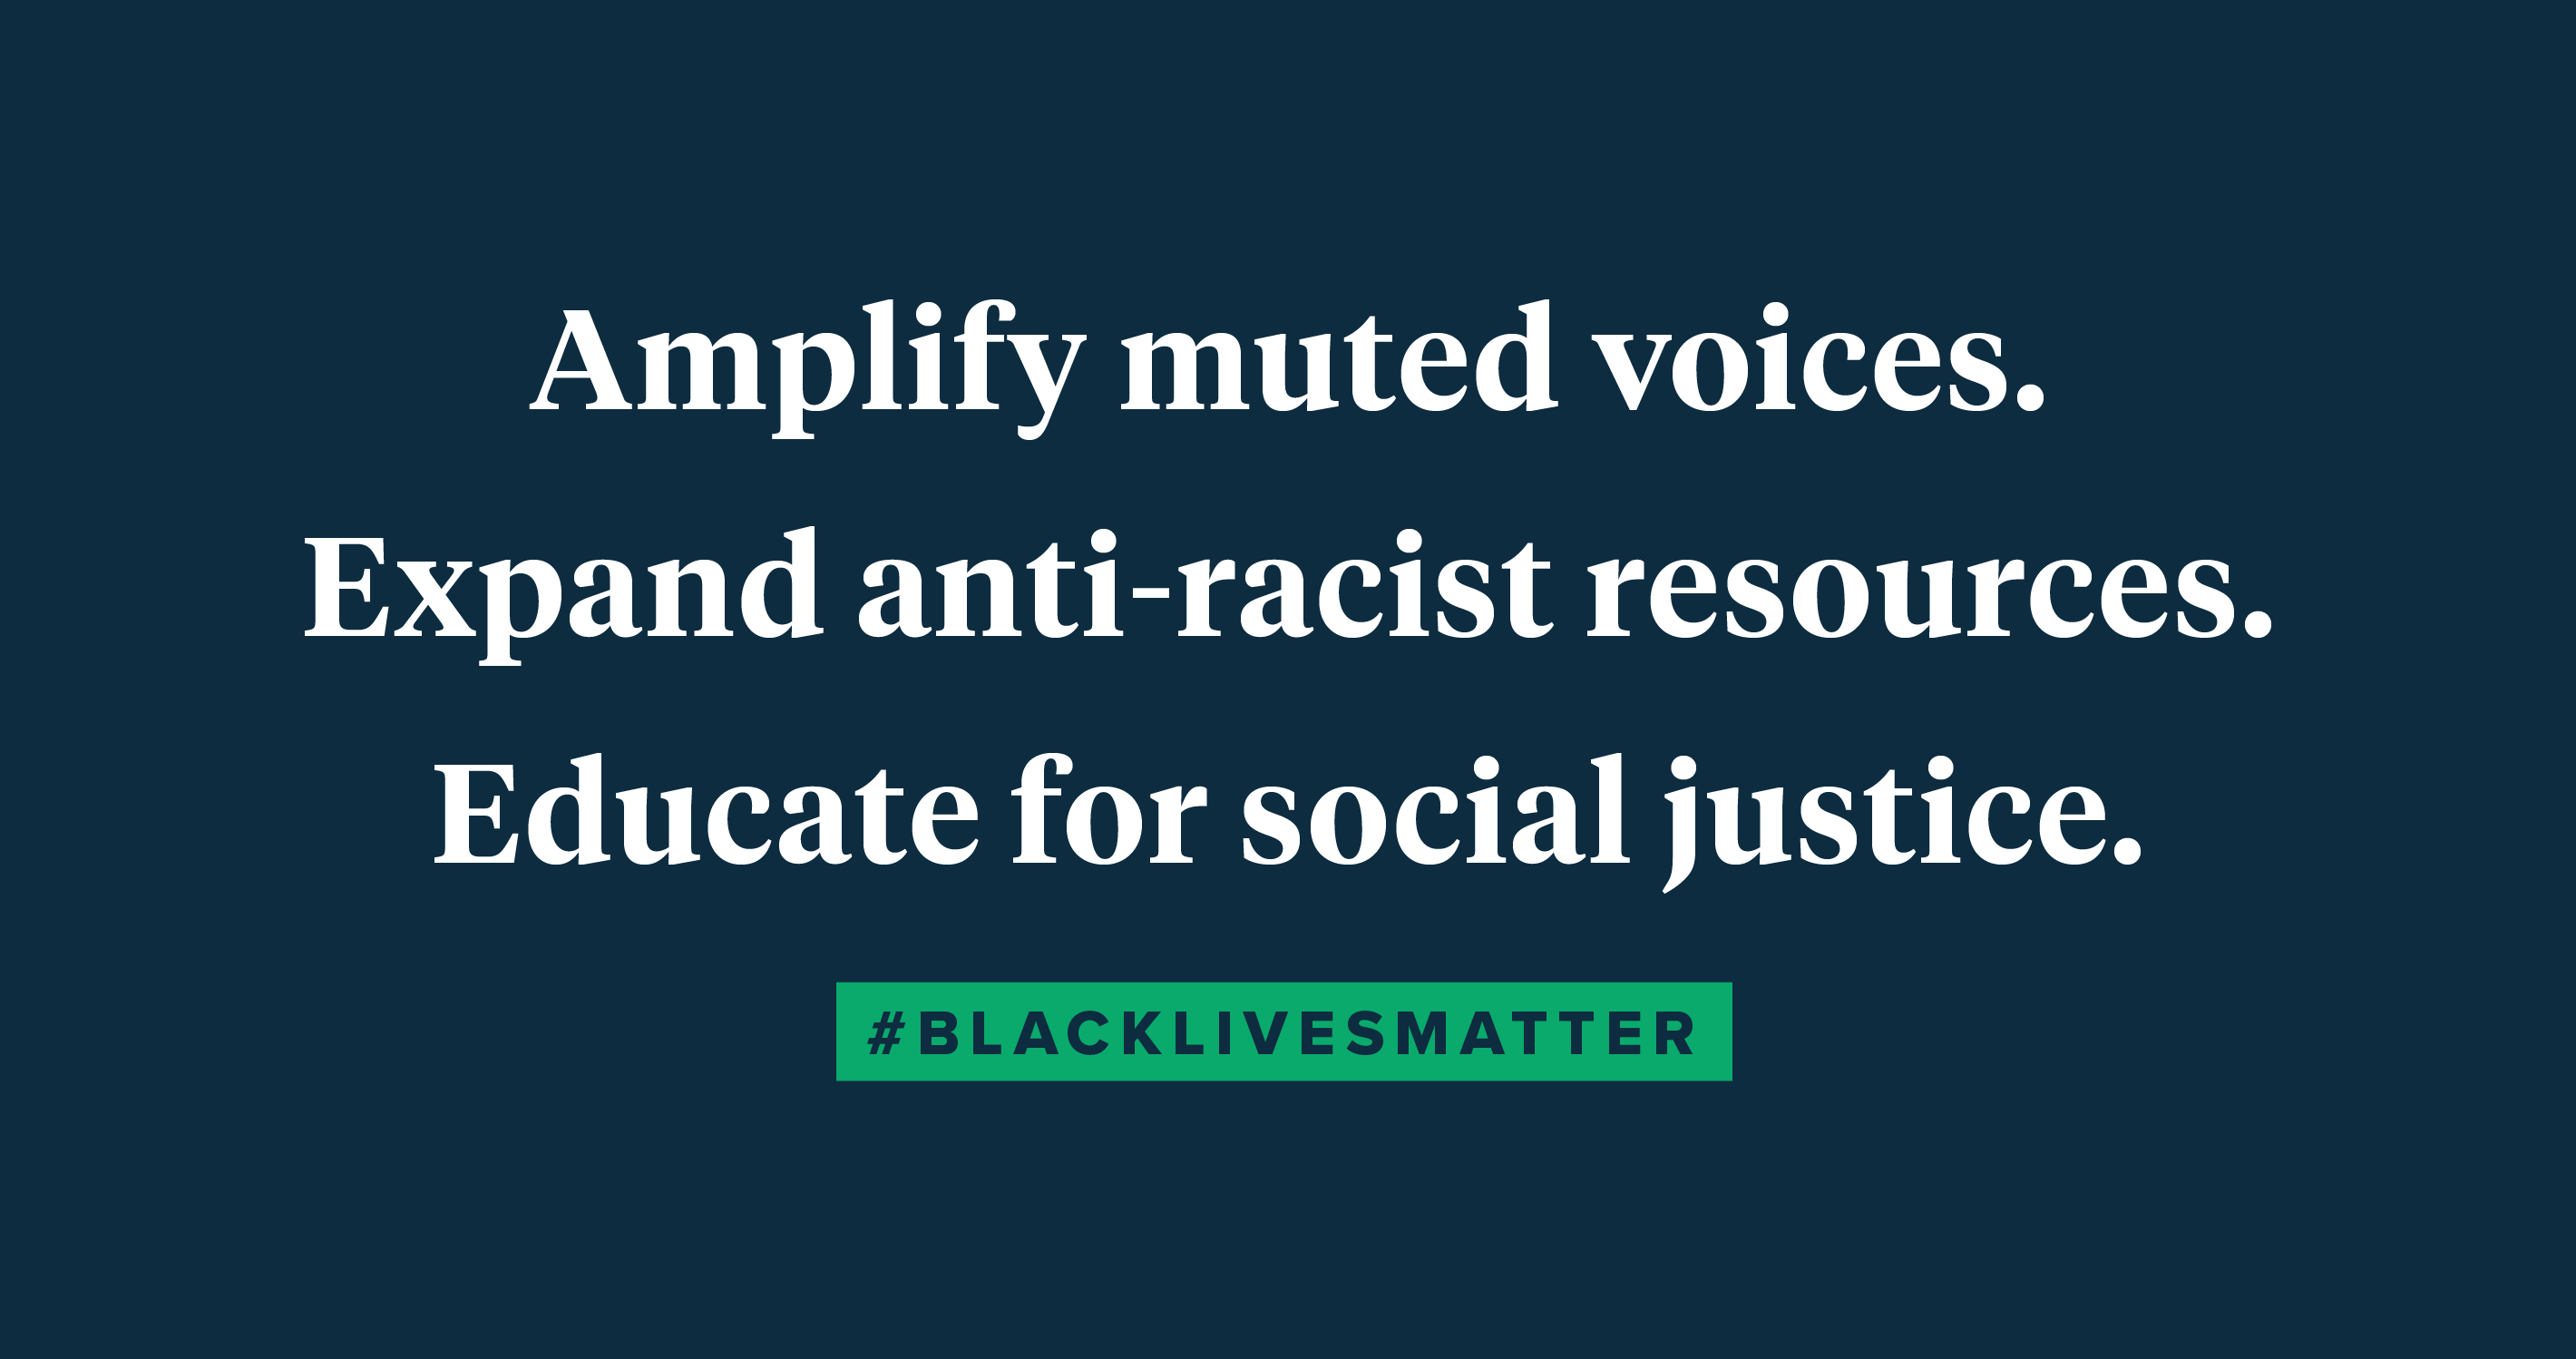 Amplify muted voices. Expand anti-racist resources. Educate for social justice. #BlackLivesMatter